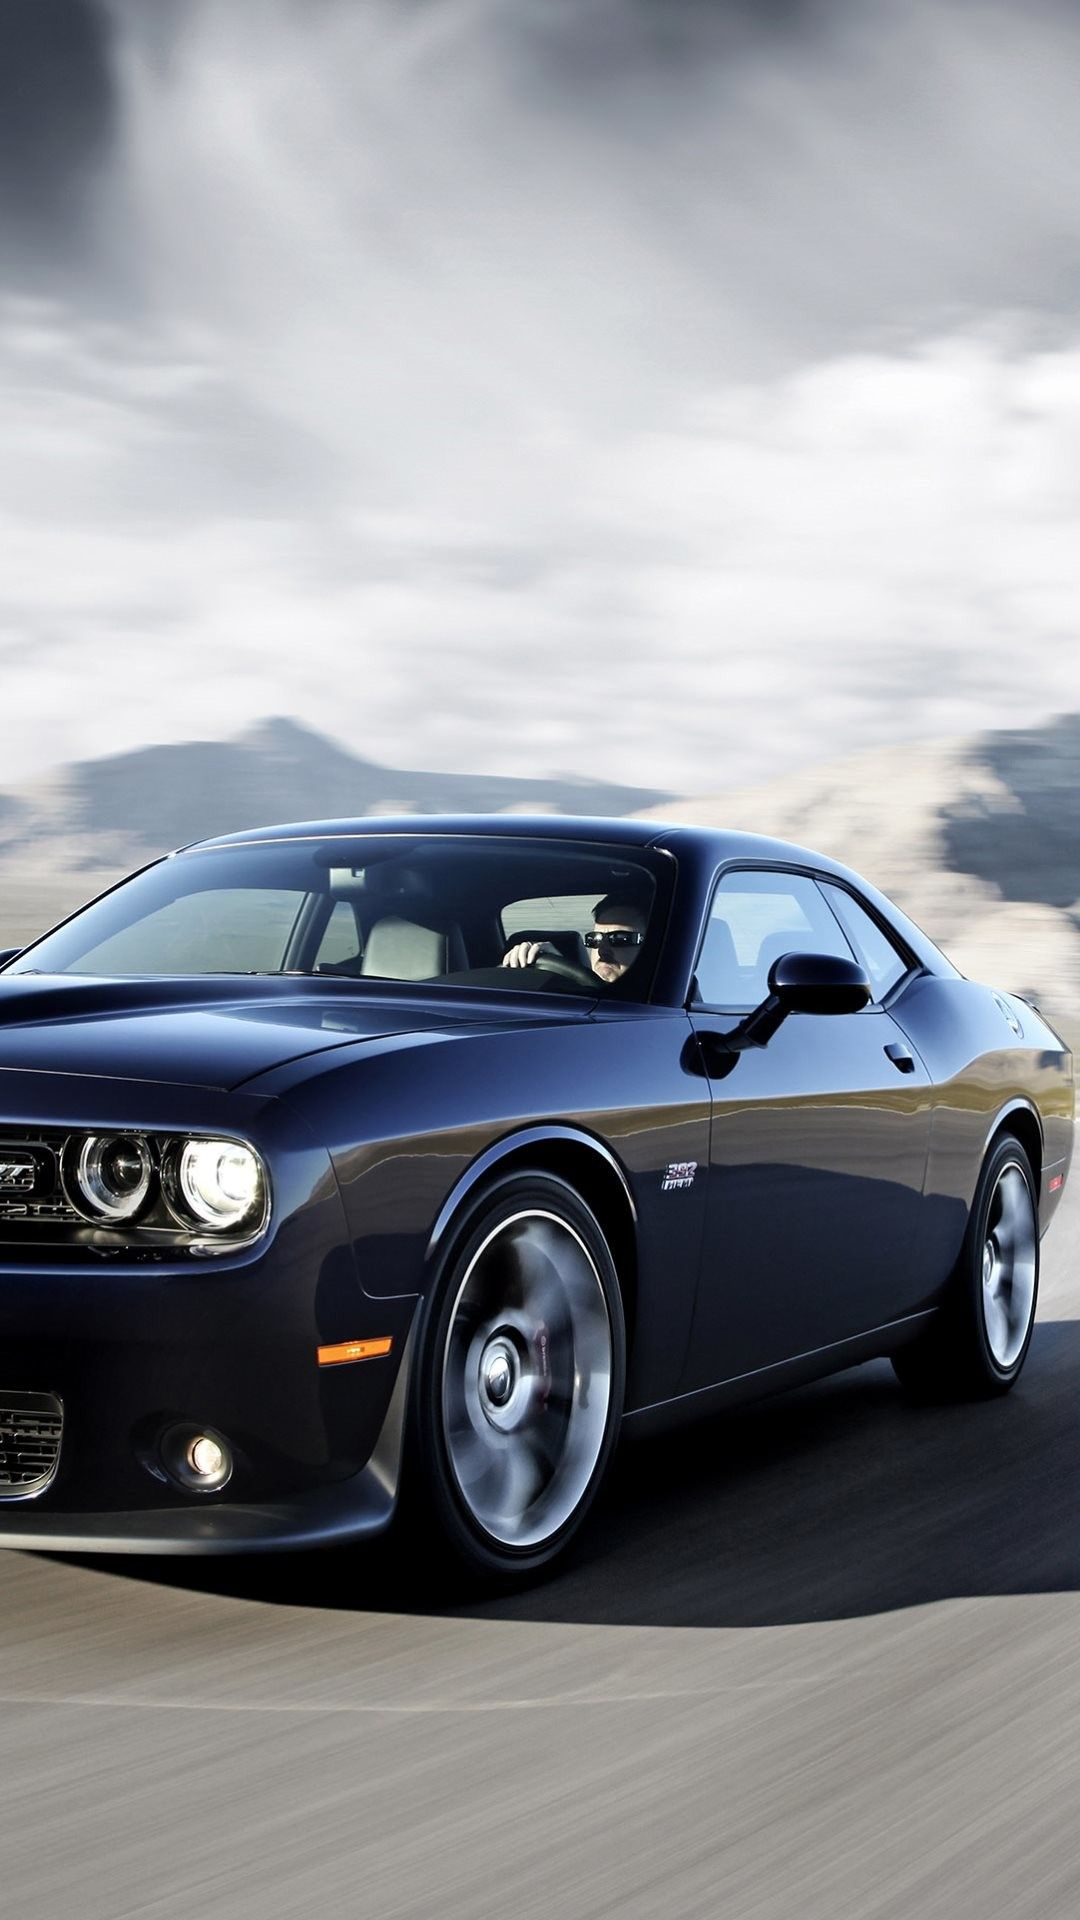 80 Dodge Challenger Black Hellcat Android Iphone Desktop